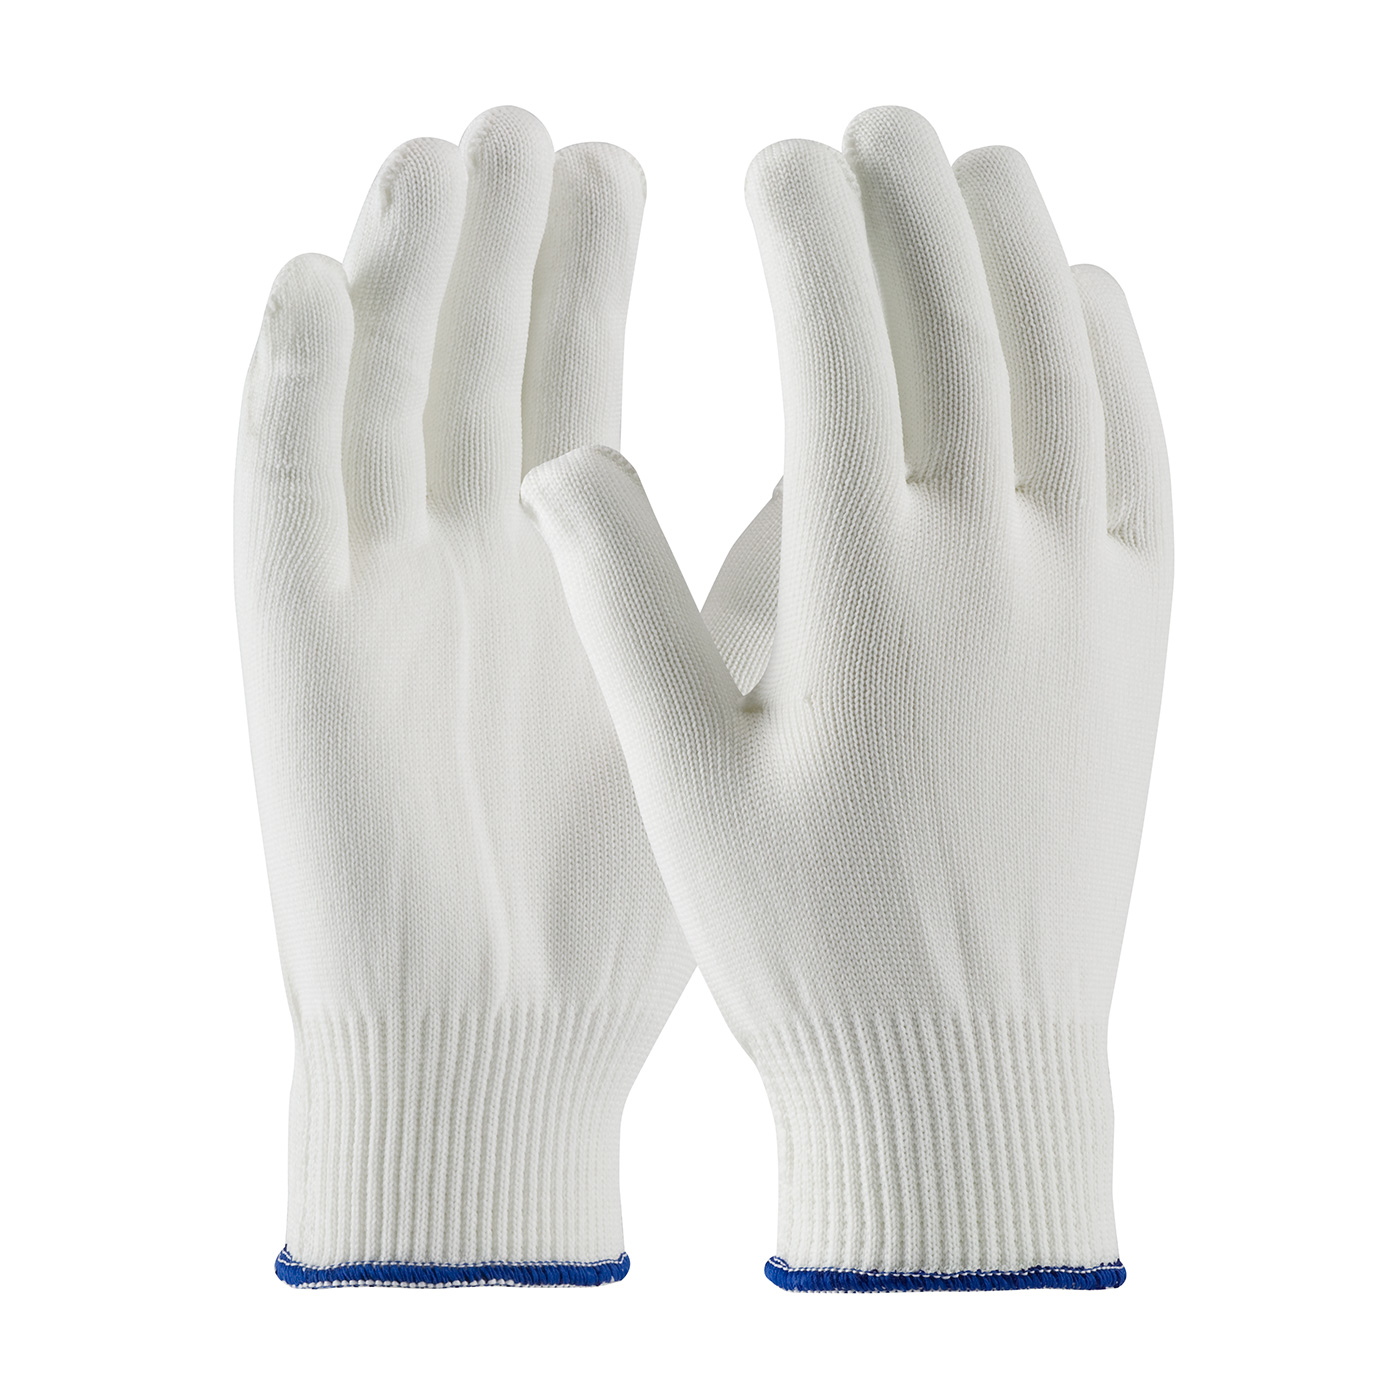 #40-230 PIP® CleanTeam® Light Weight Seamless Knit Polyester Cleanroom Gloves